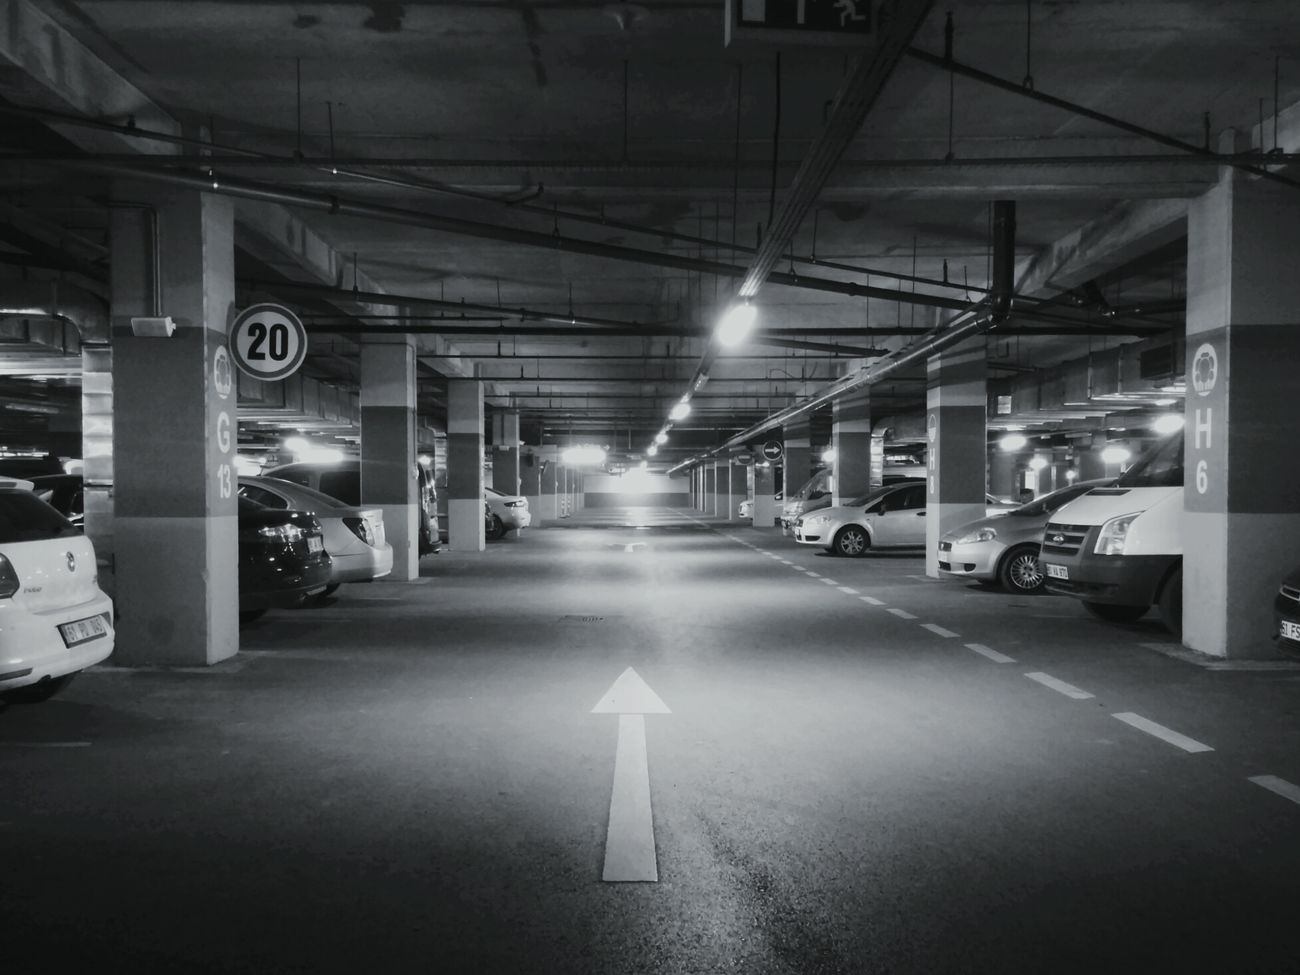 Parking Lot Industry Car Transportation Warehouse Parking Garage Store City No People Basement Road Sign Indoors  Neon Architecture Night Nikon Photography First Eyeem Photo Scenics Black Background Black White Asphalt Lines